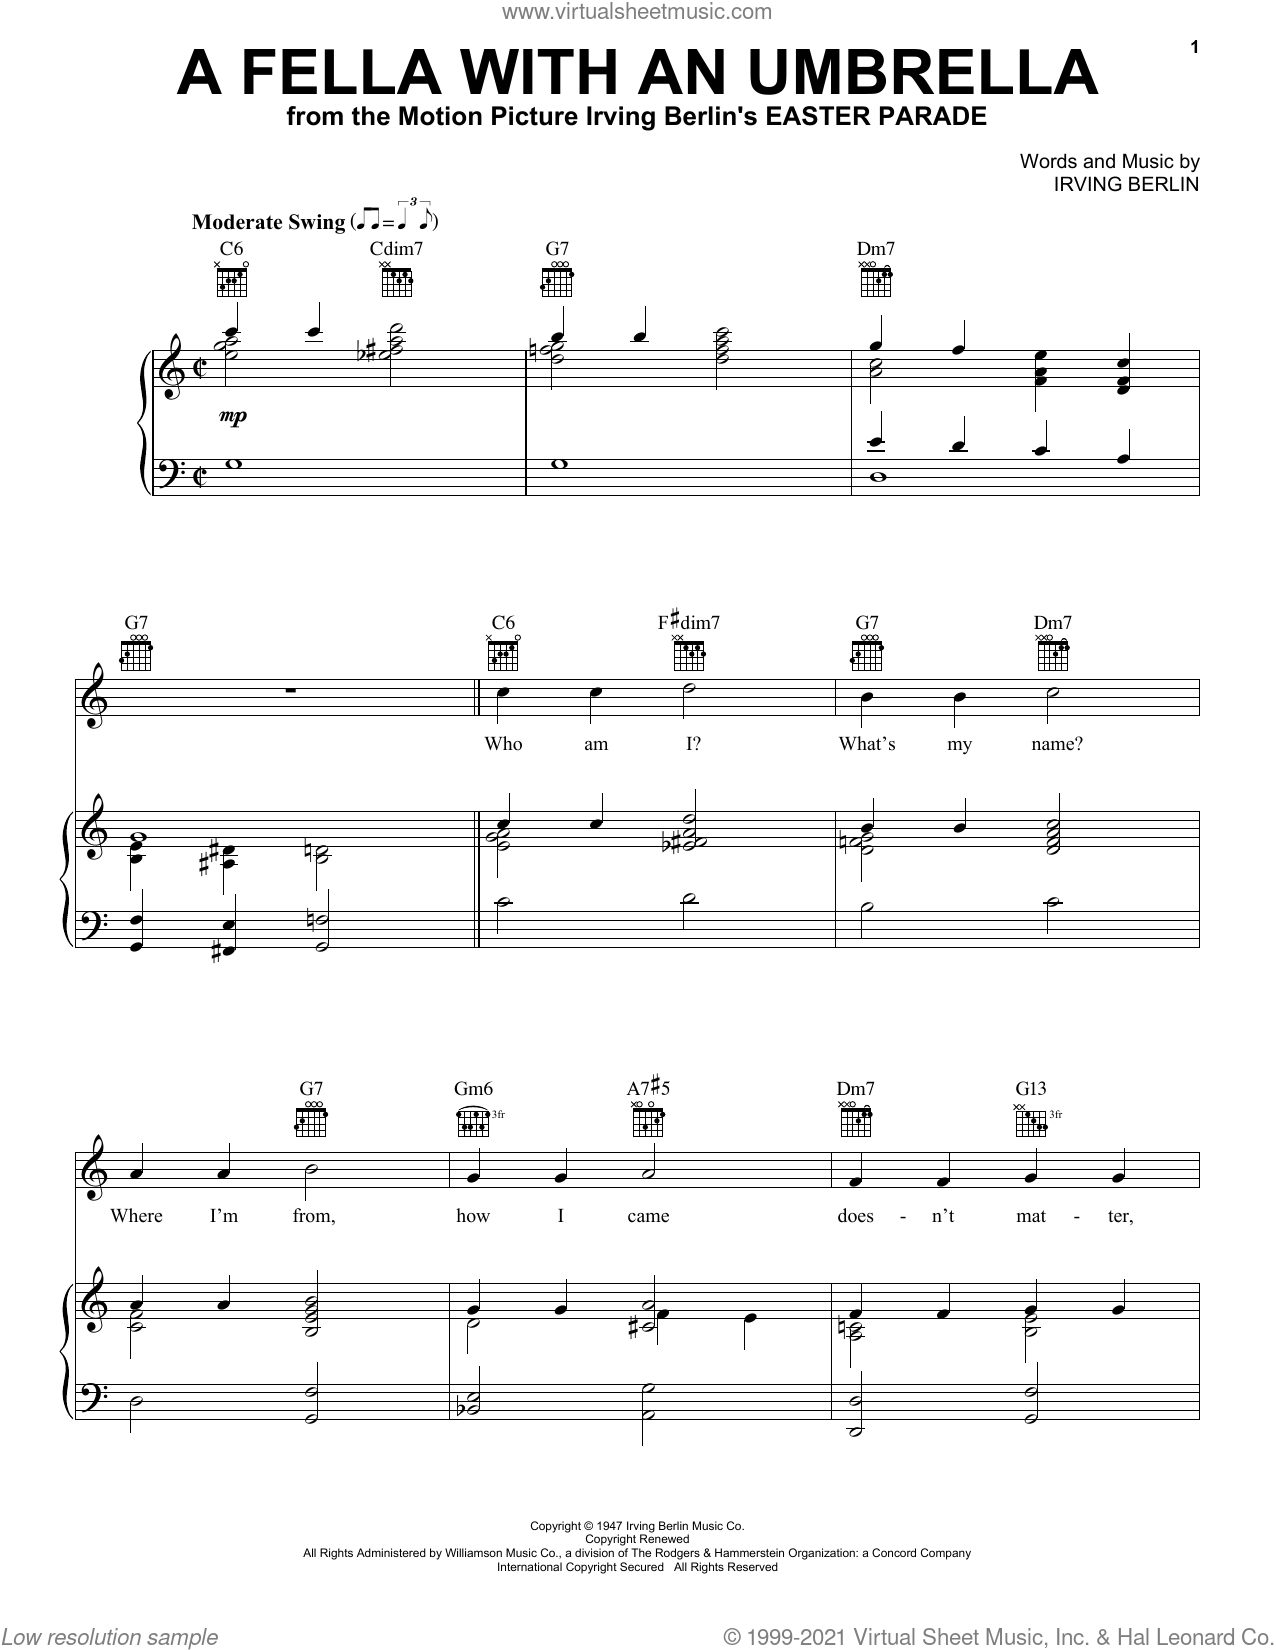 A Fella With An Umbrella (from Easter Parade) sheet music for voice, piano or guitar by Irving Berlin, intermediate skill level